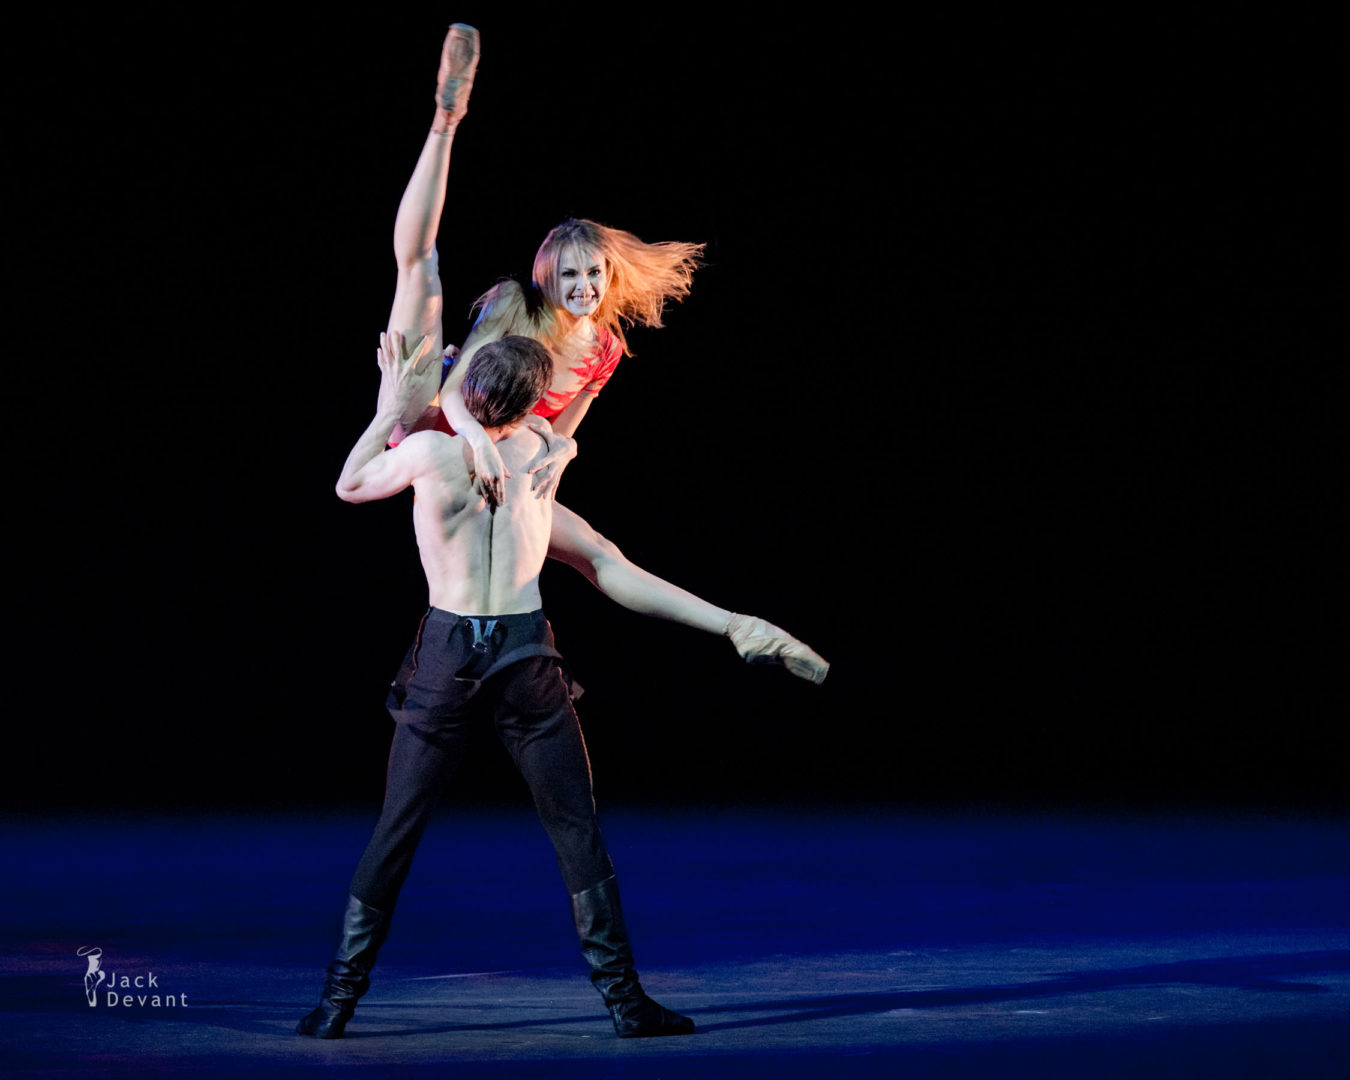 Olga Marchenkova (Rus. Ольга Марченкова) and Artemy Belyakov (Rus. Артемий Беляков) in the Hero of Our Time, music by Ilya Demutsky, choreography by Yuri Possokhov